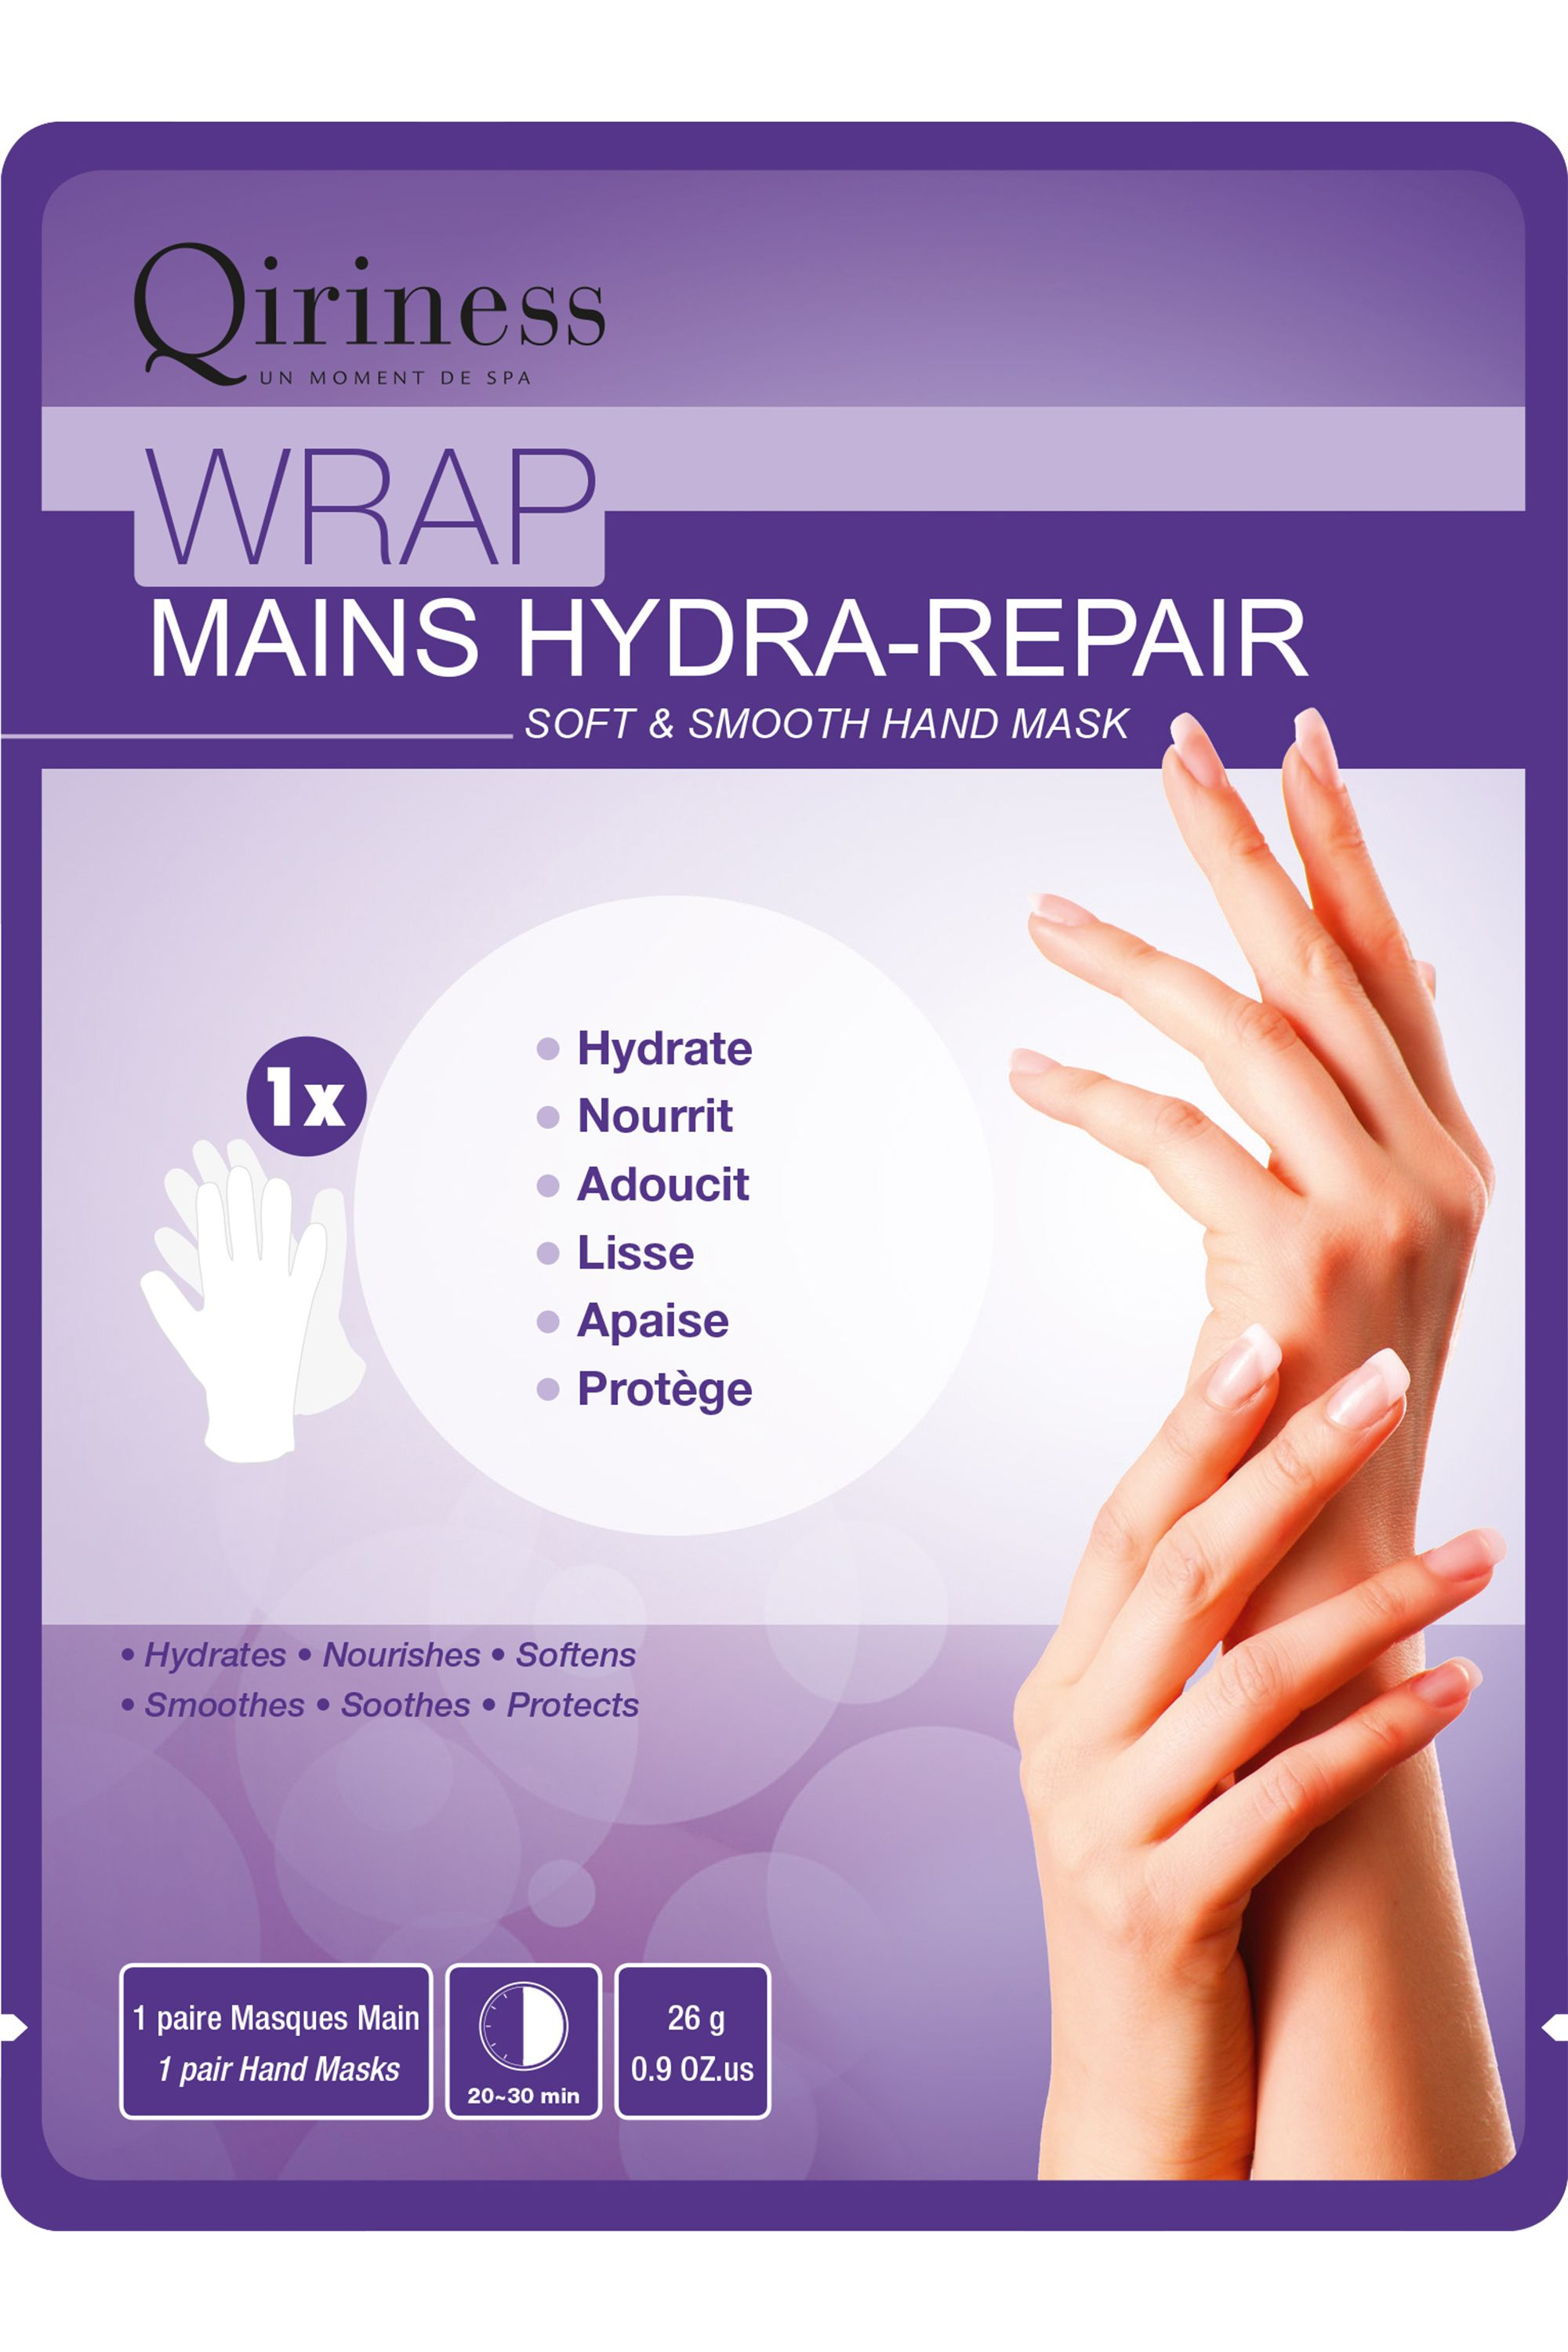 Blissim : Qiriness - Wrap Mains Hydra-Repair - Wrap Mains Hydra-Repair